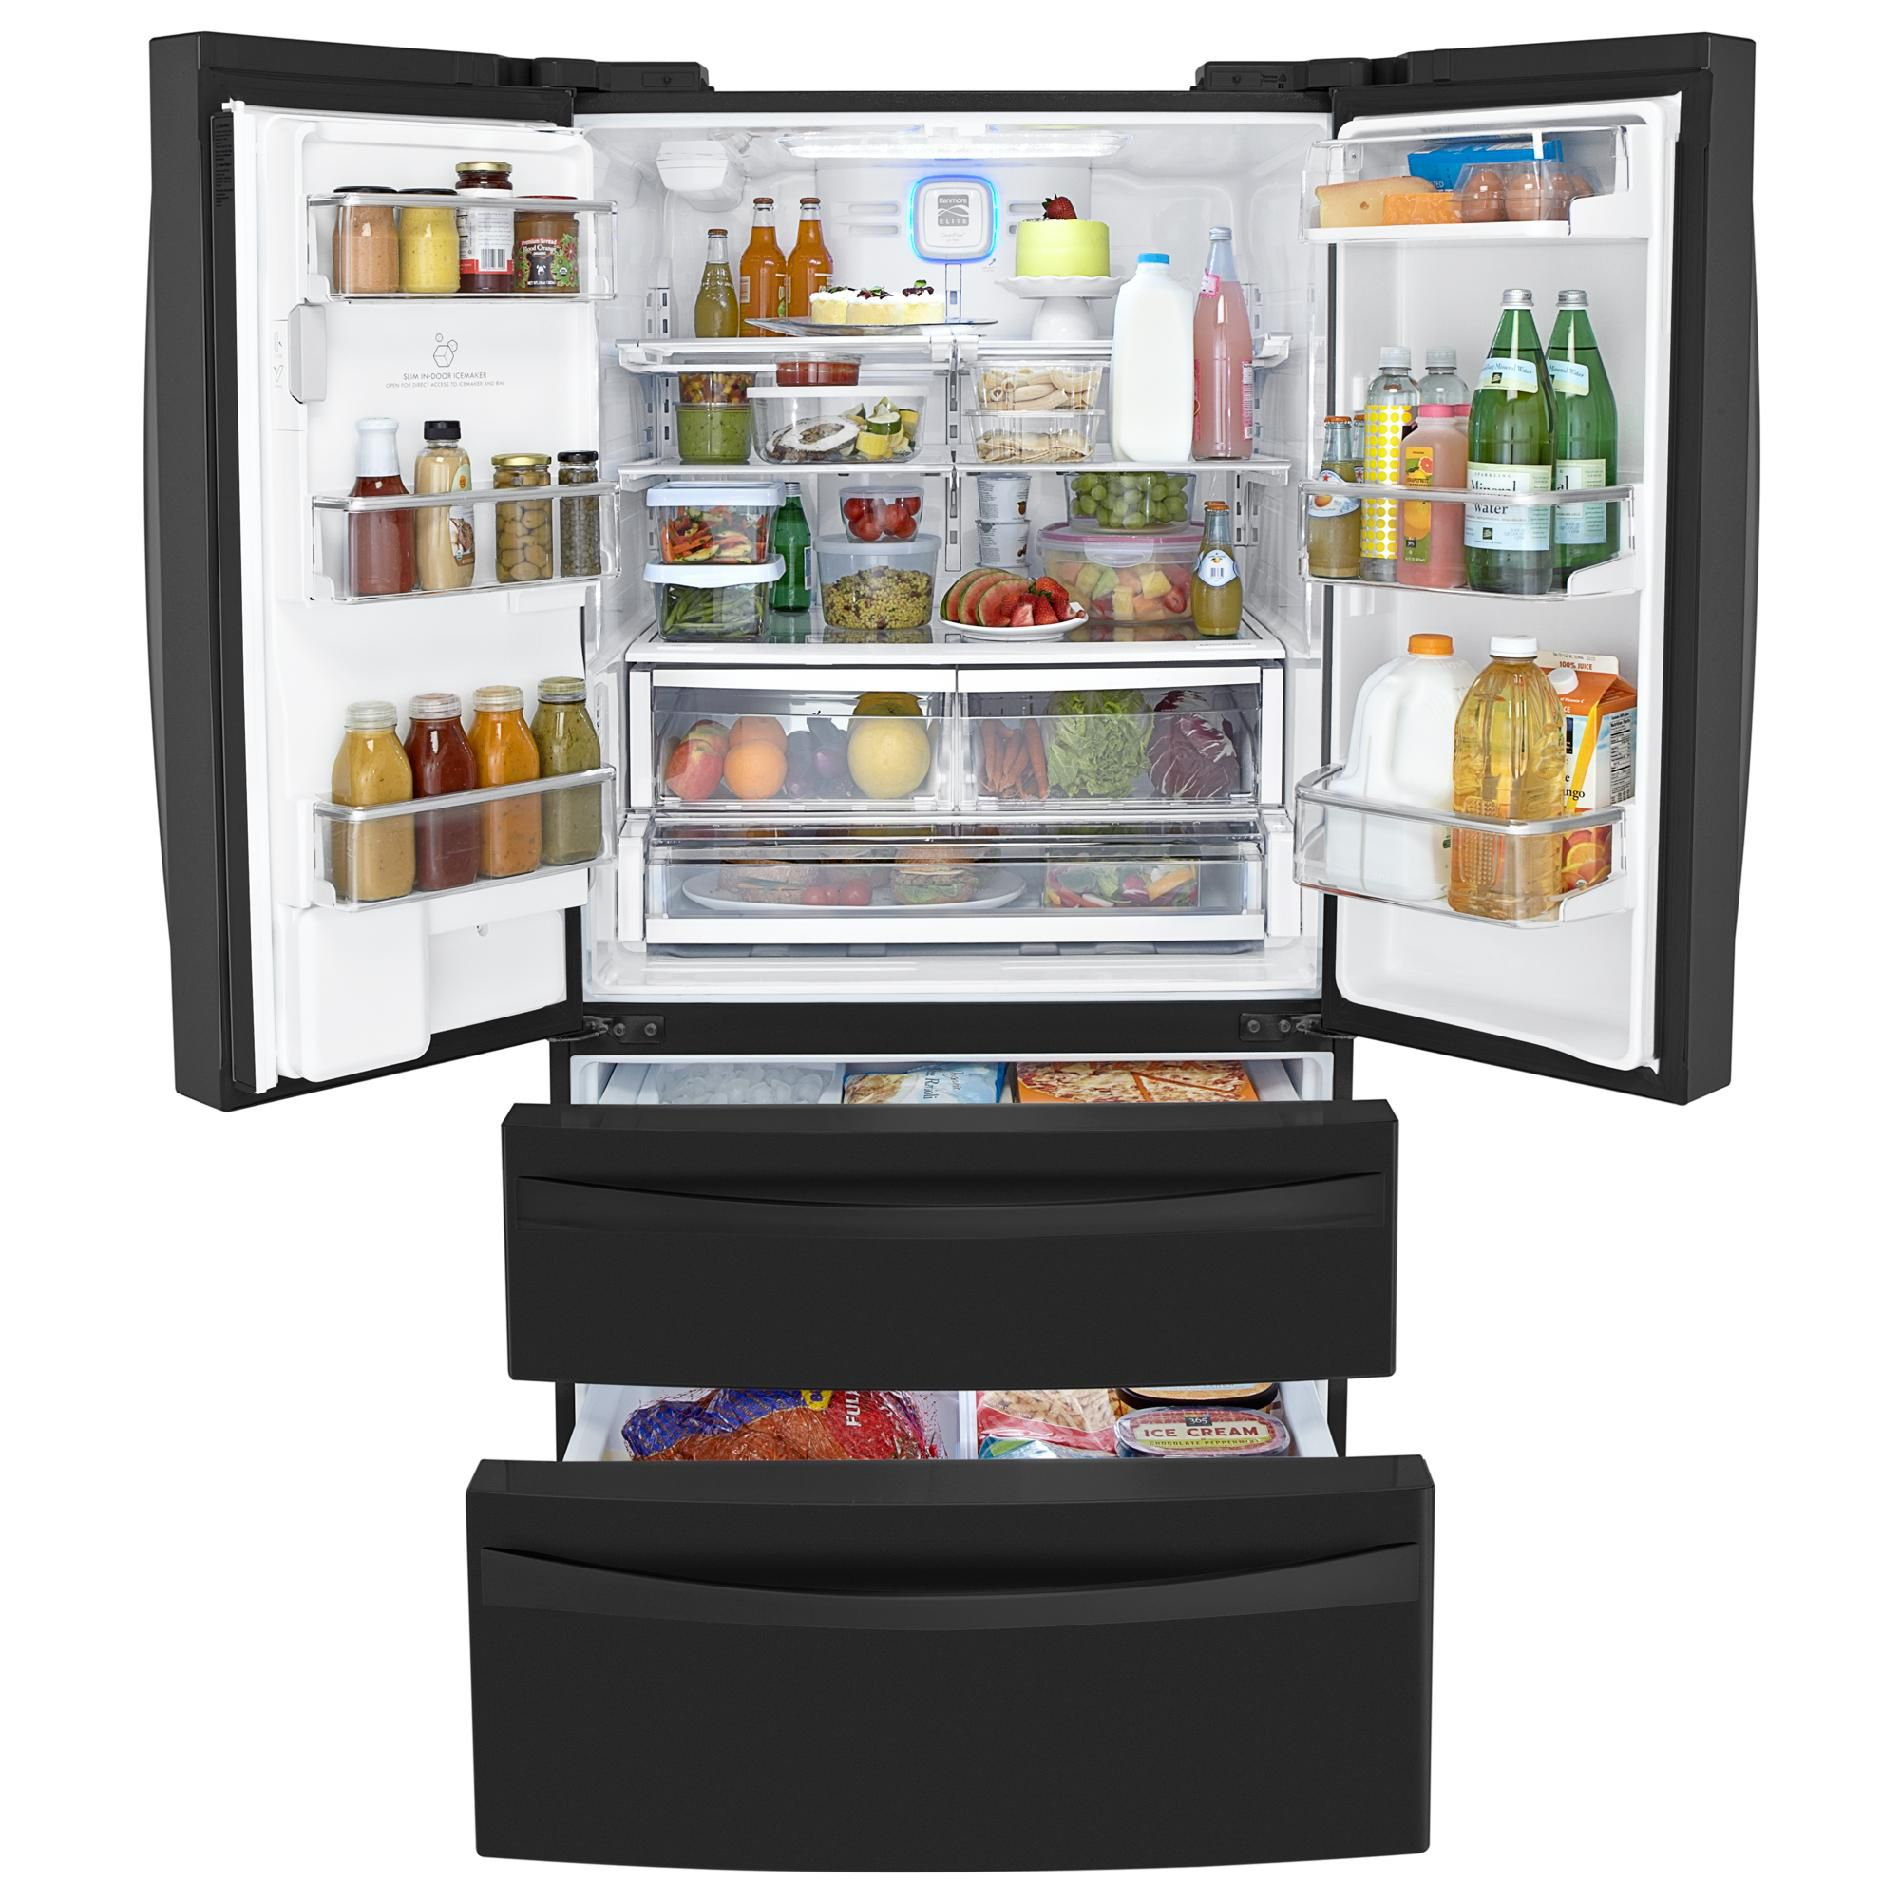 Kenmore Elite 31.0 cu. ft. Dual-Freezer French-Door Bottom-Freezer Refrigerator - Black